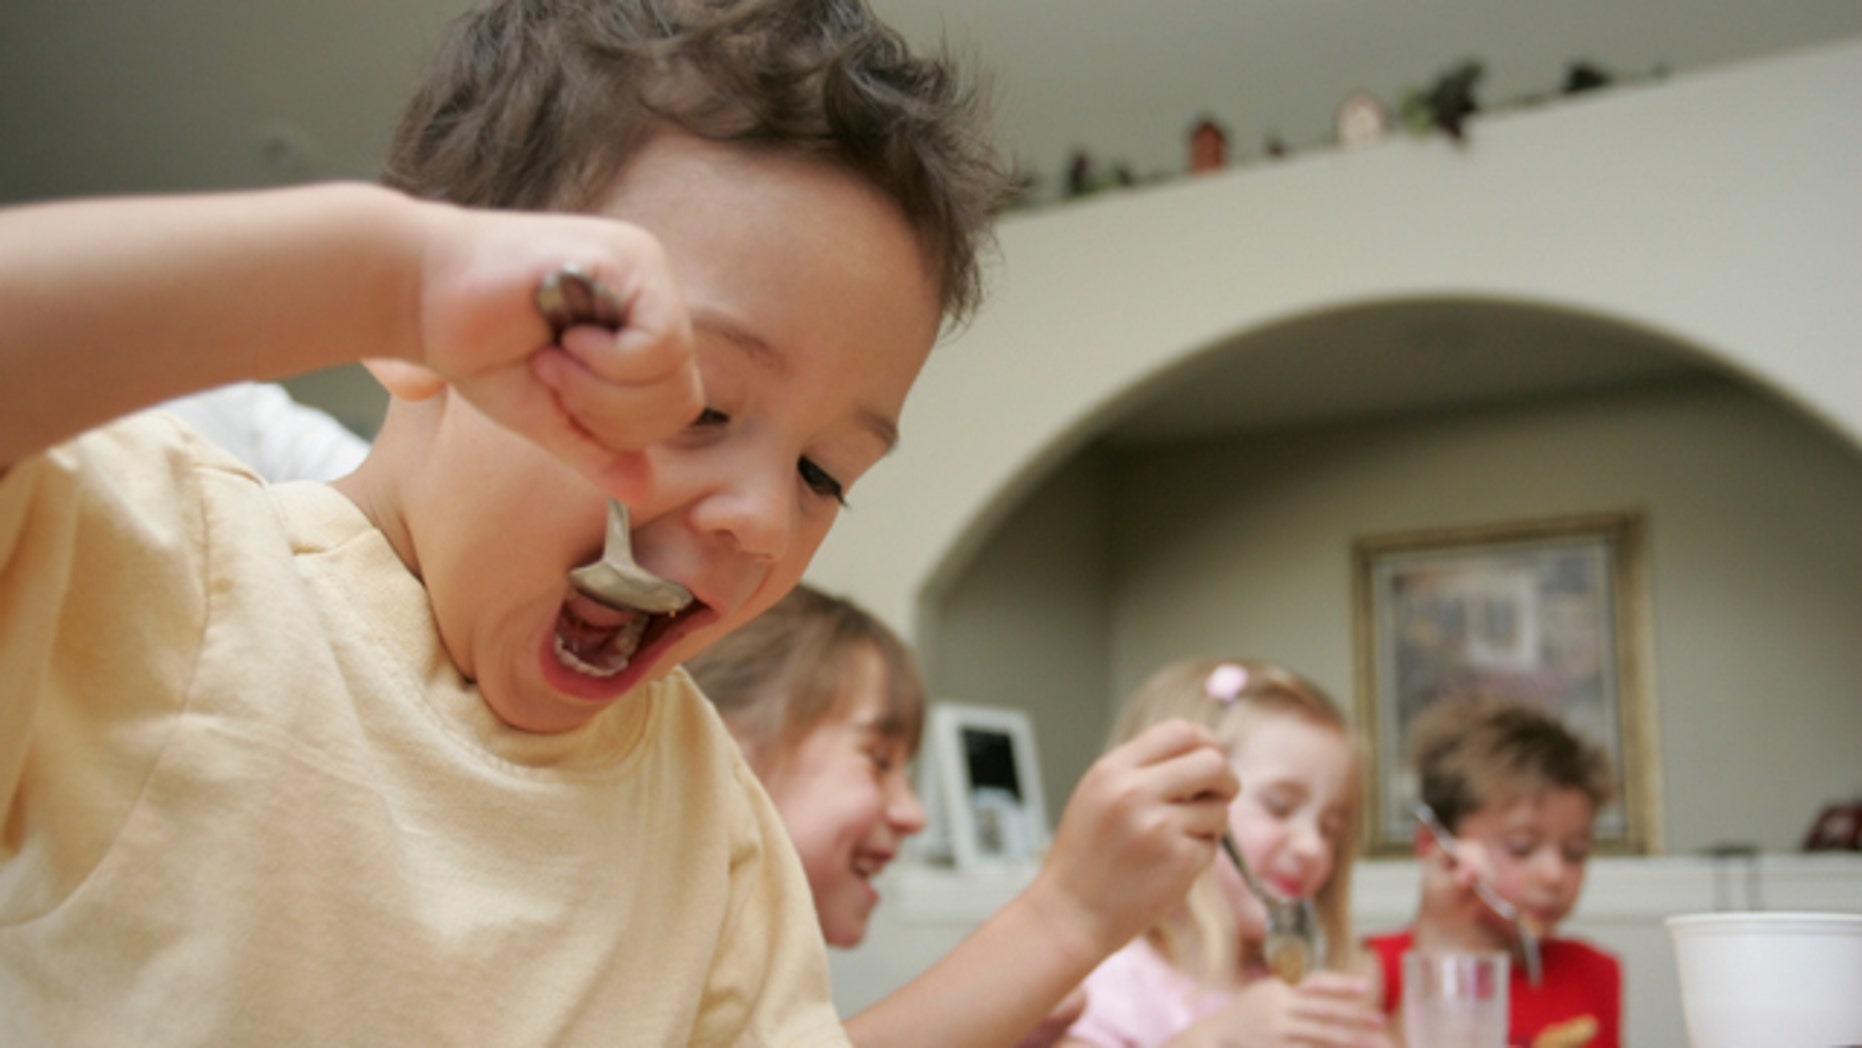 Children With Adhd Have Higher Risk Of >> Adhd Drugs Tied To Slightly Higher Risk Of Heart Problems In